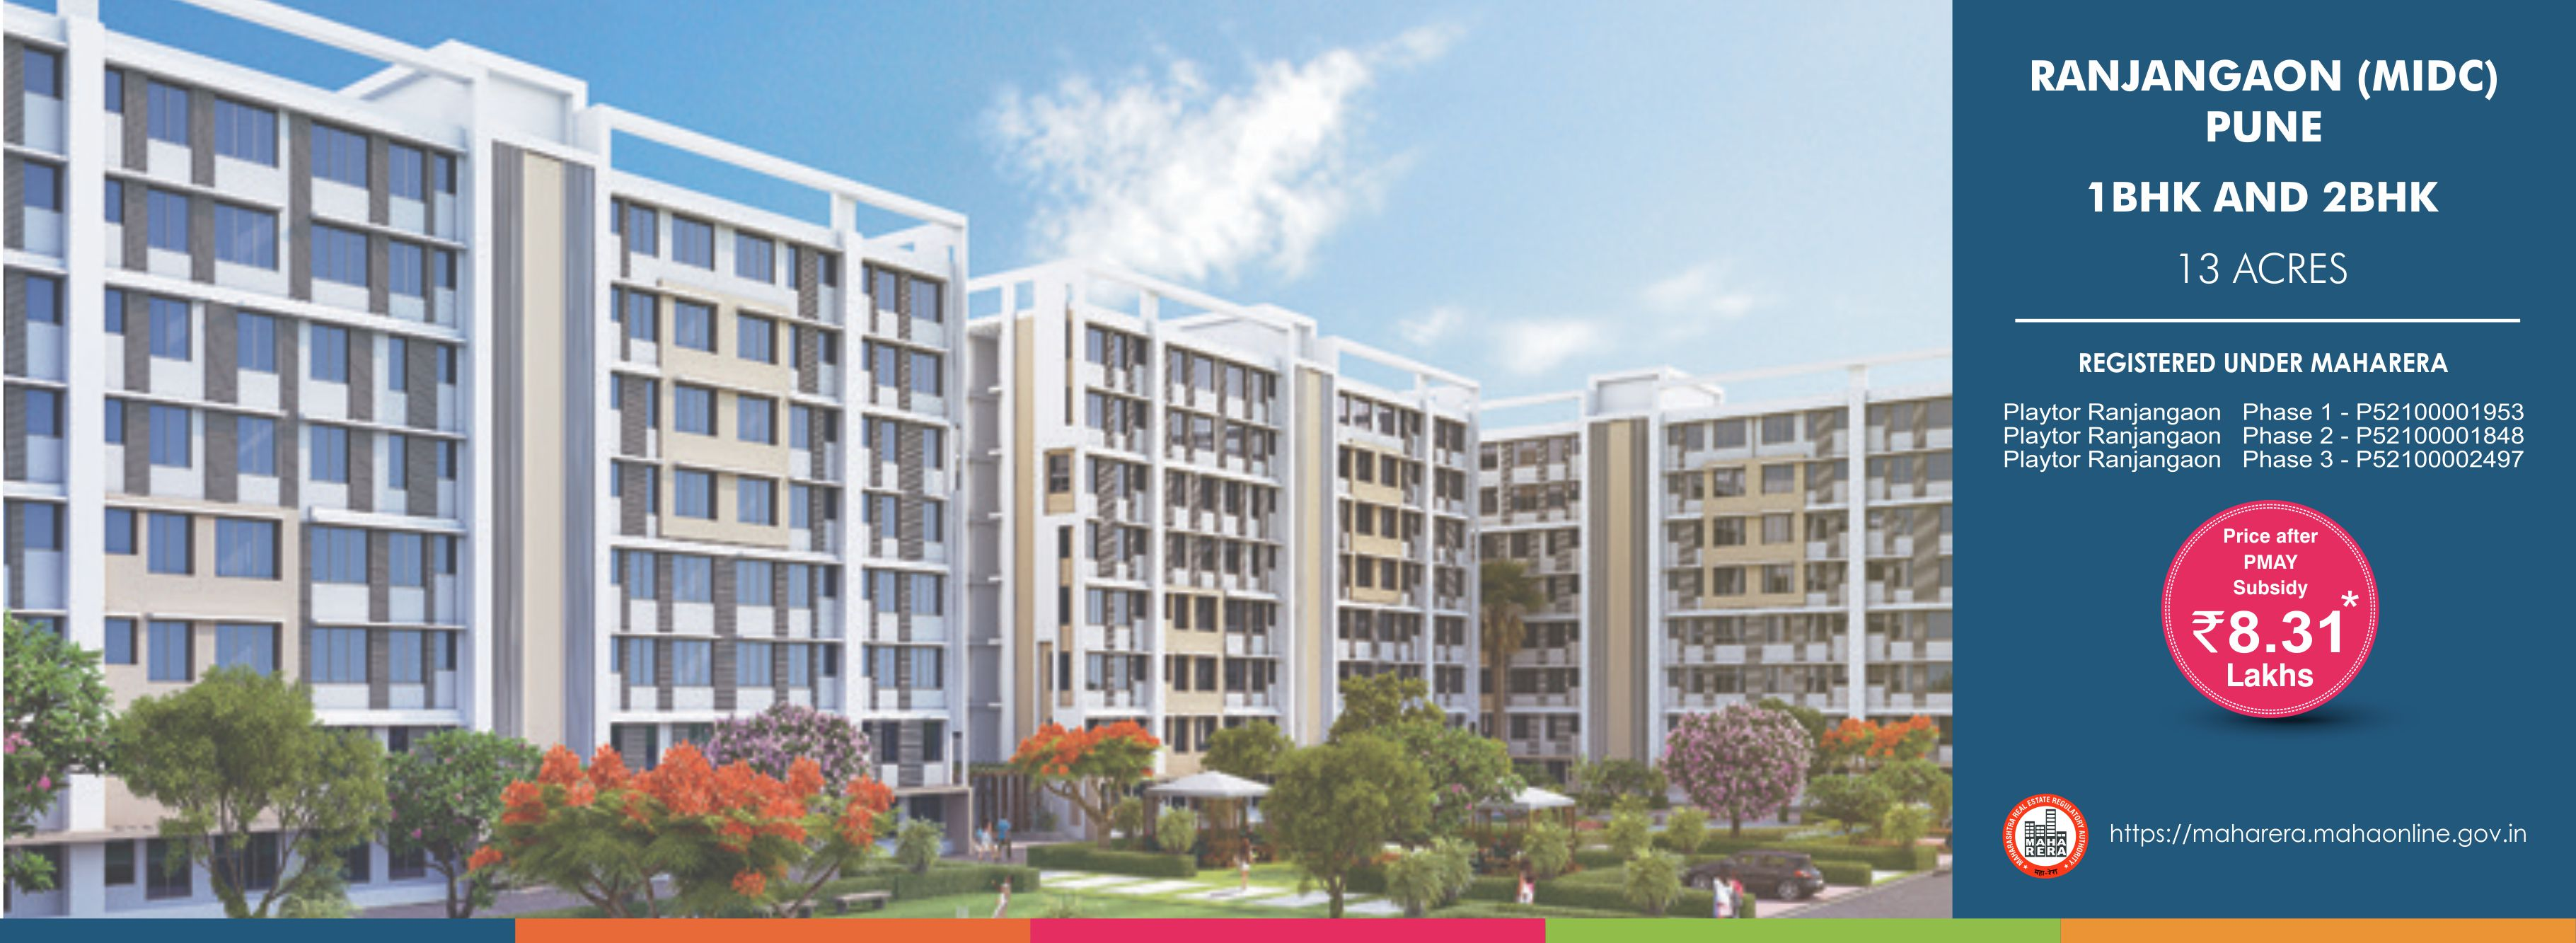 Low Budget Flats In Pune Below 10 To 15 Lakhs At Playtor